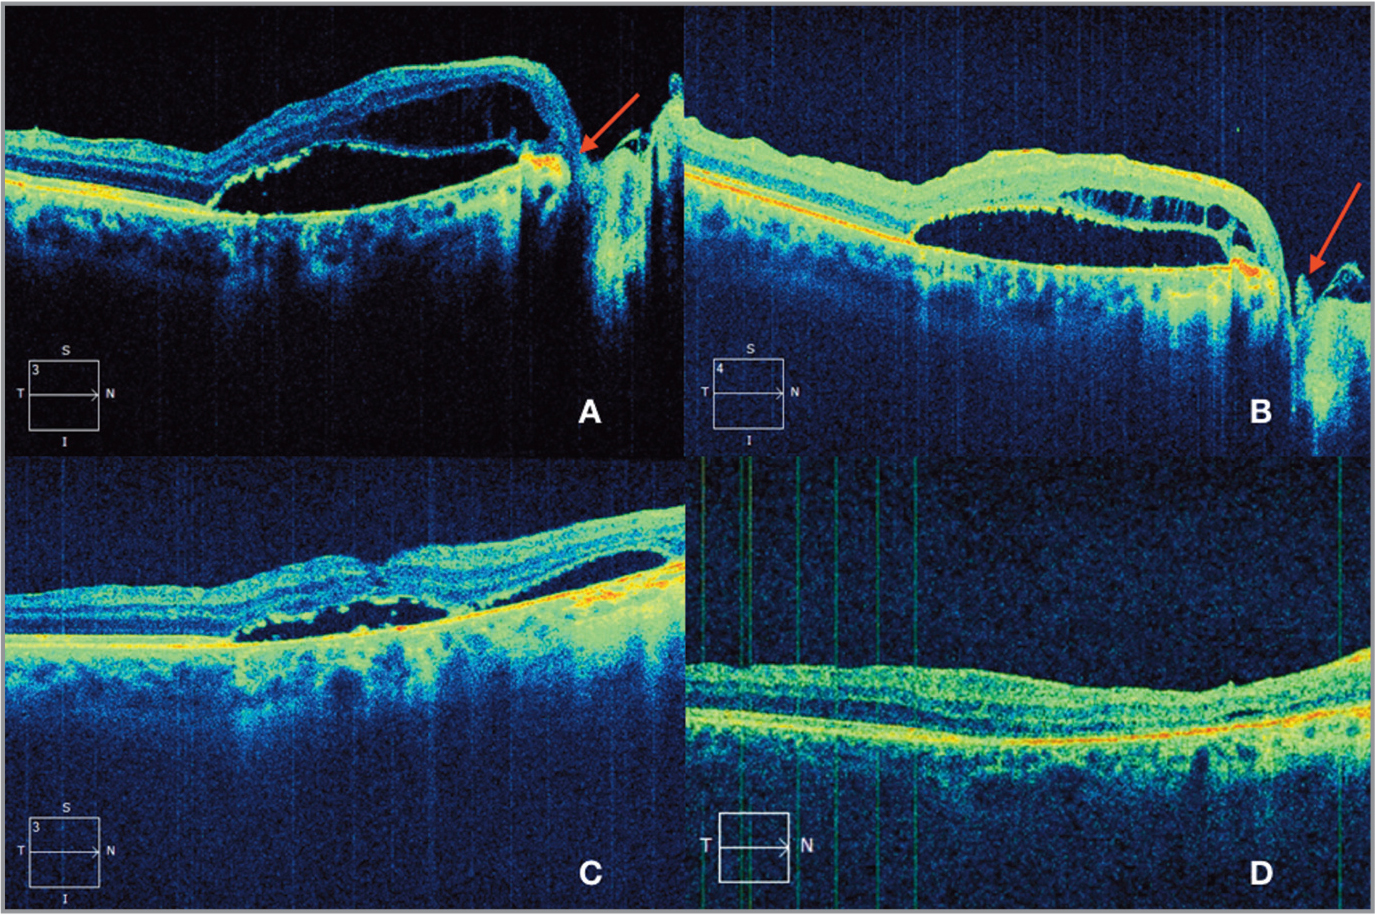 Optical coherence tomography (OCT) shows serous macular detachment with overlying retinoschisis and the connection to the subretinal fluid in the macula (A). OCT shows the internal limiting membrane plug inside the optic pit 1 month after surgery (B). Spectral-domain OCT demonstrates partial resolution of submacular fluid at the third month (C) and complete resolution at the tenth month after surgery (D).